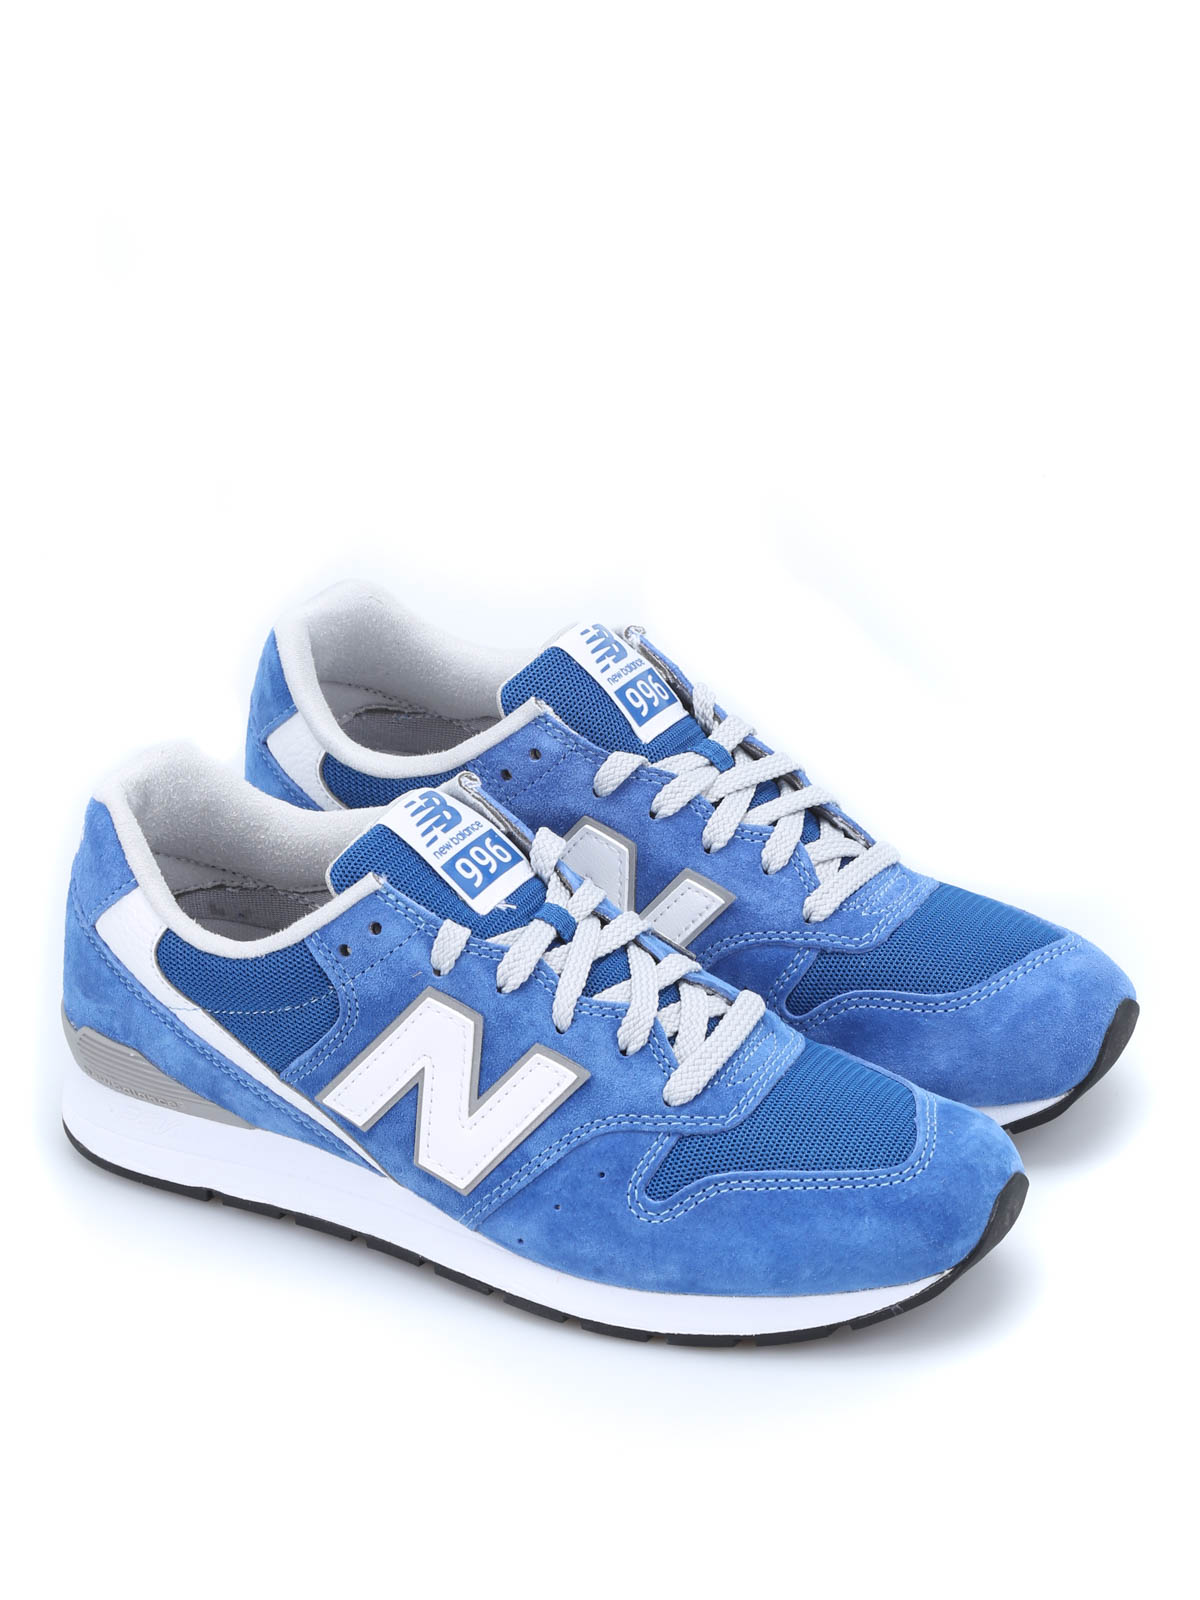 New Balance - Suede and mesh 996 sneakers - trainers - MRL996KC